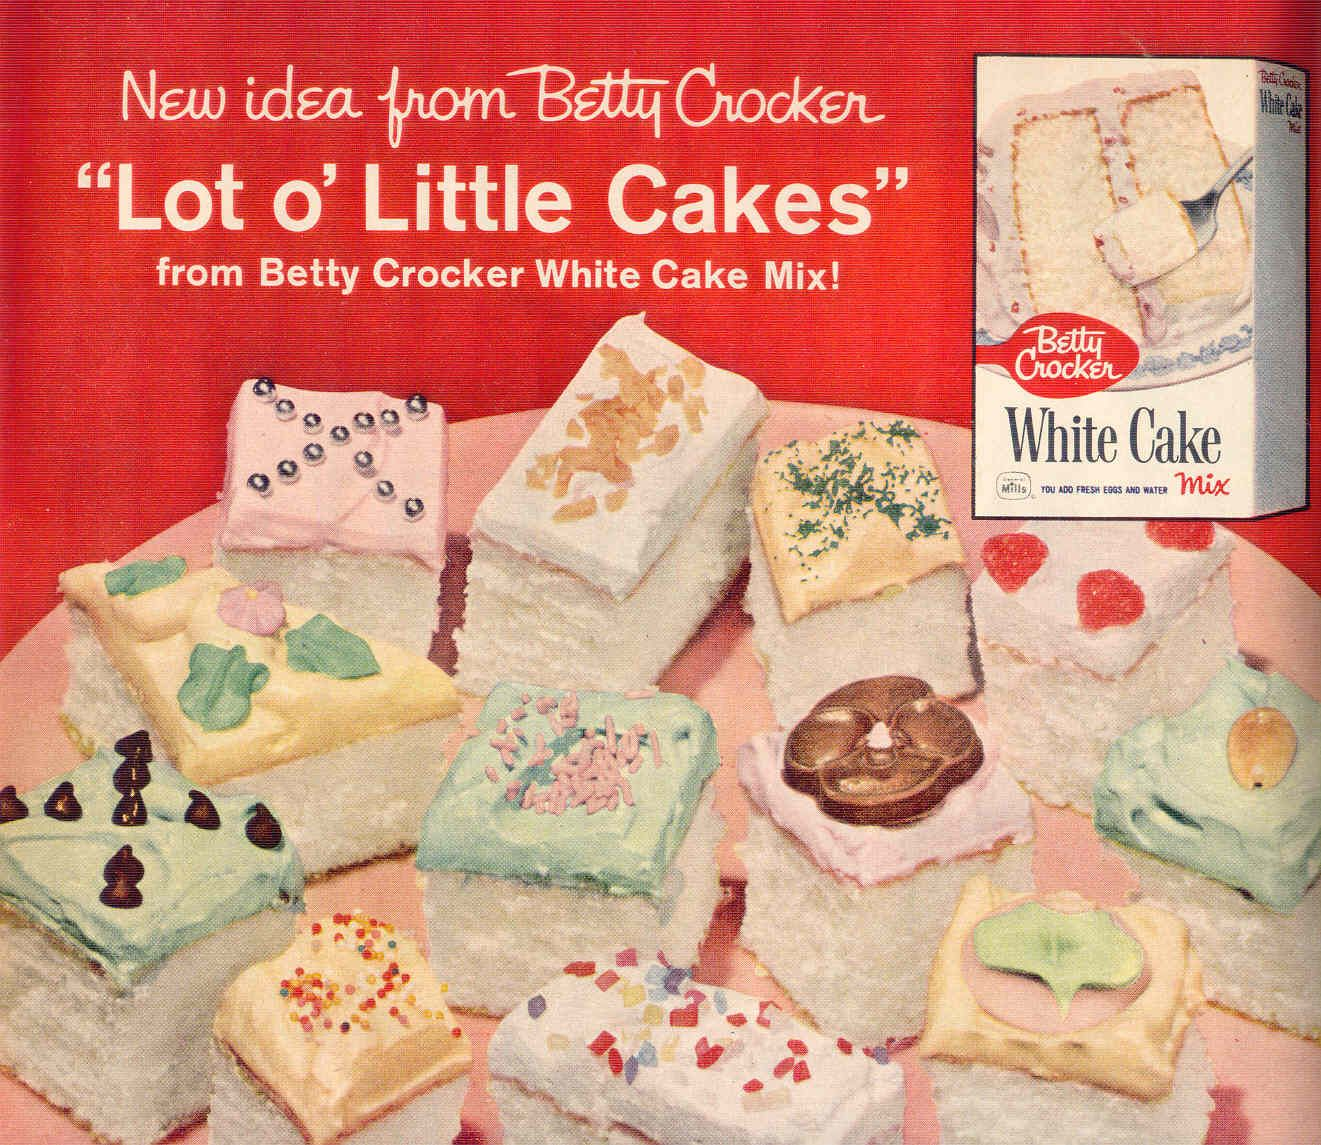 Lot o' Little Cakes from a Betty Crocker cake mix.  Strange color palette.